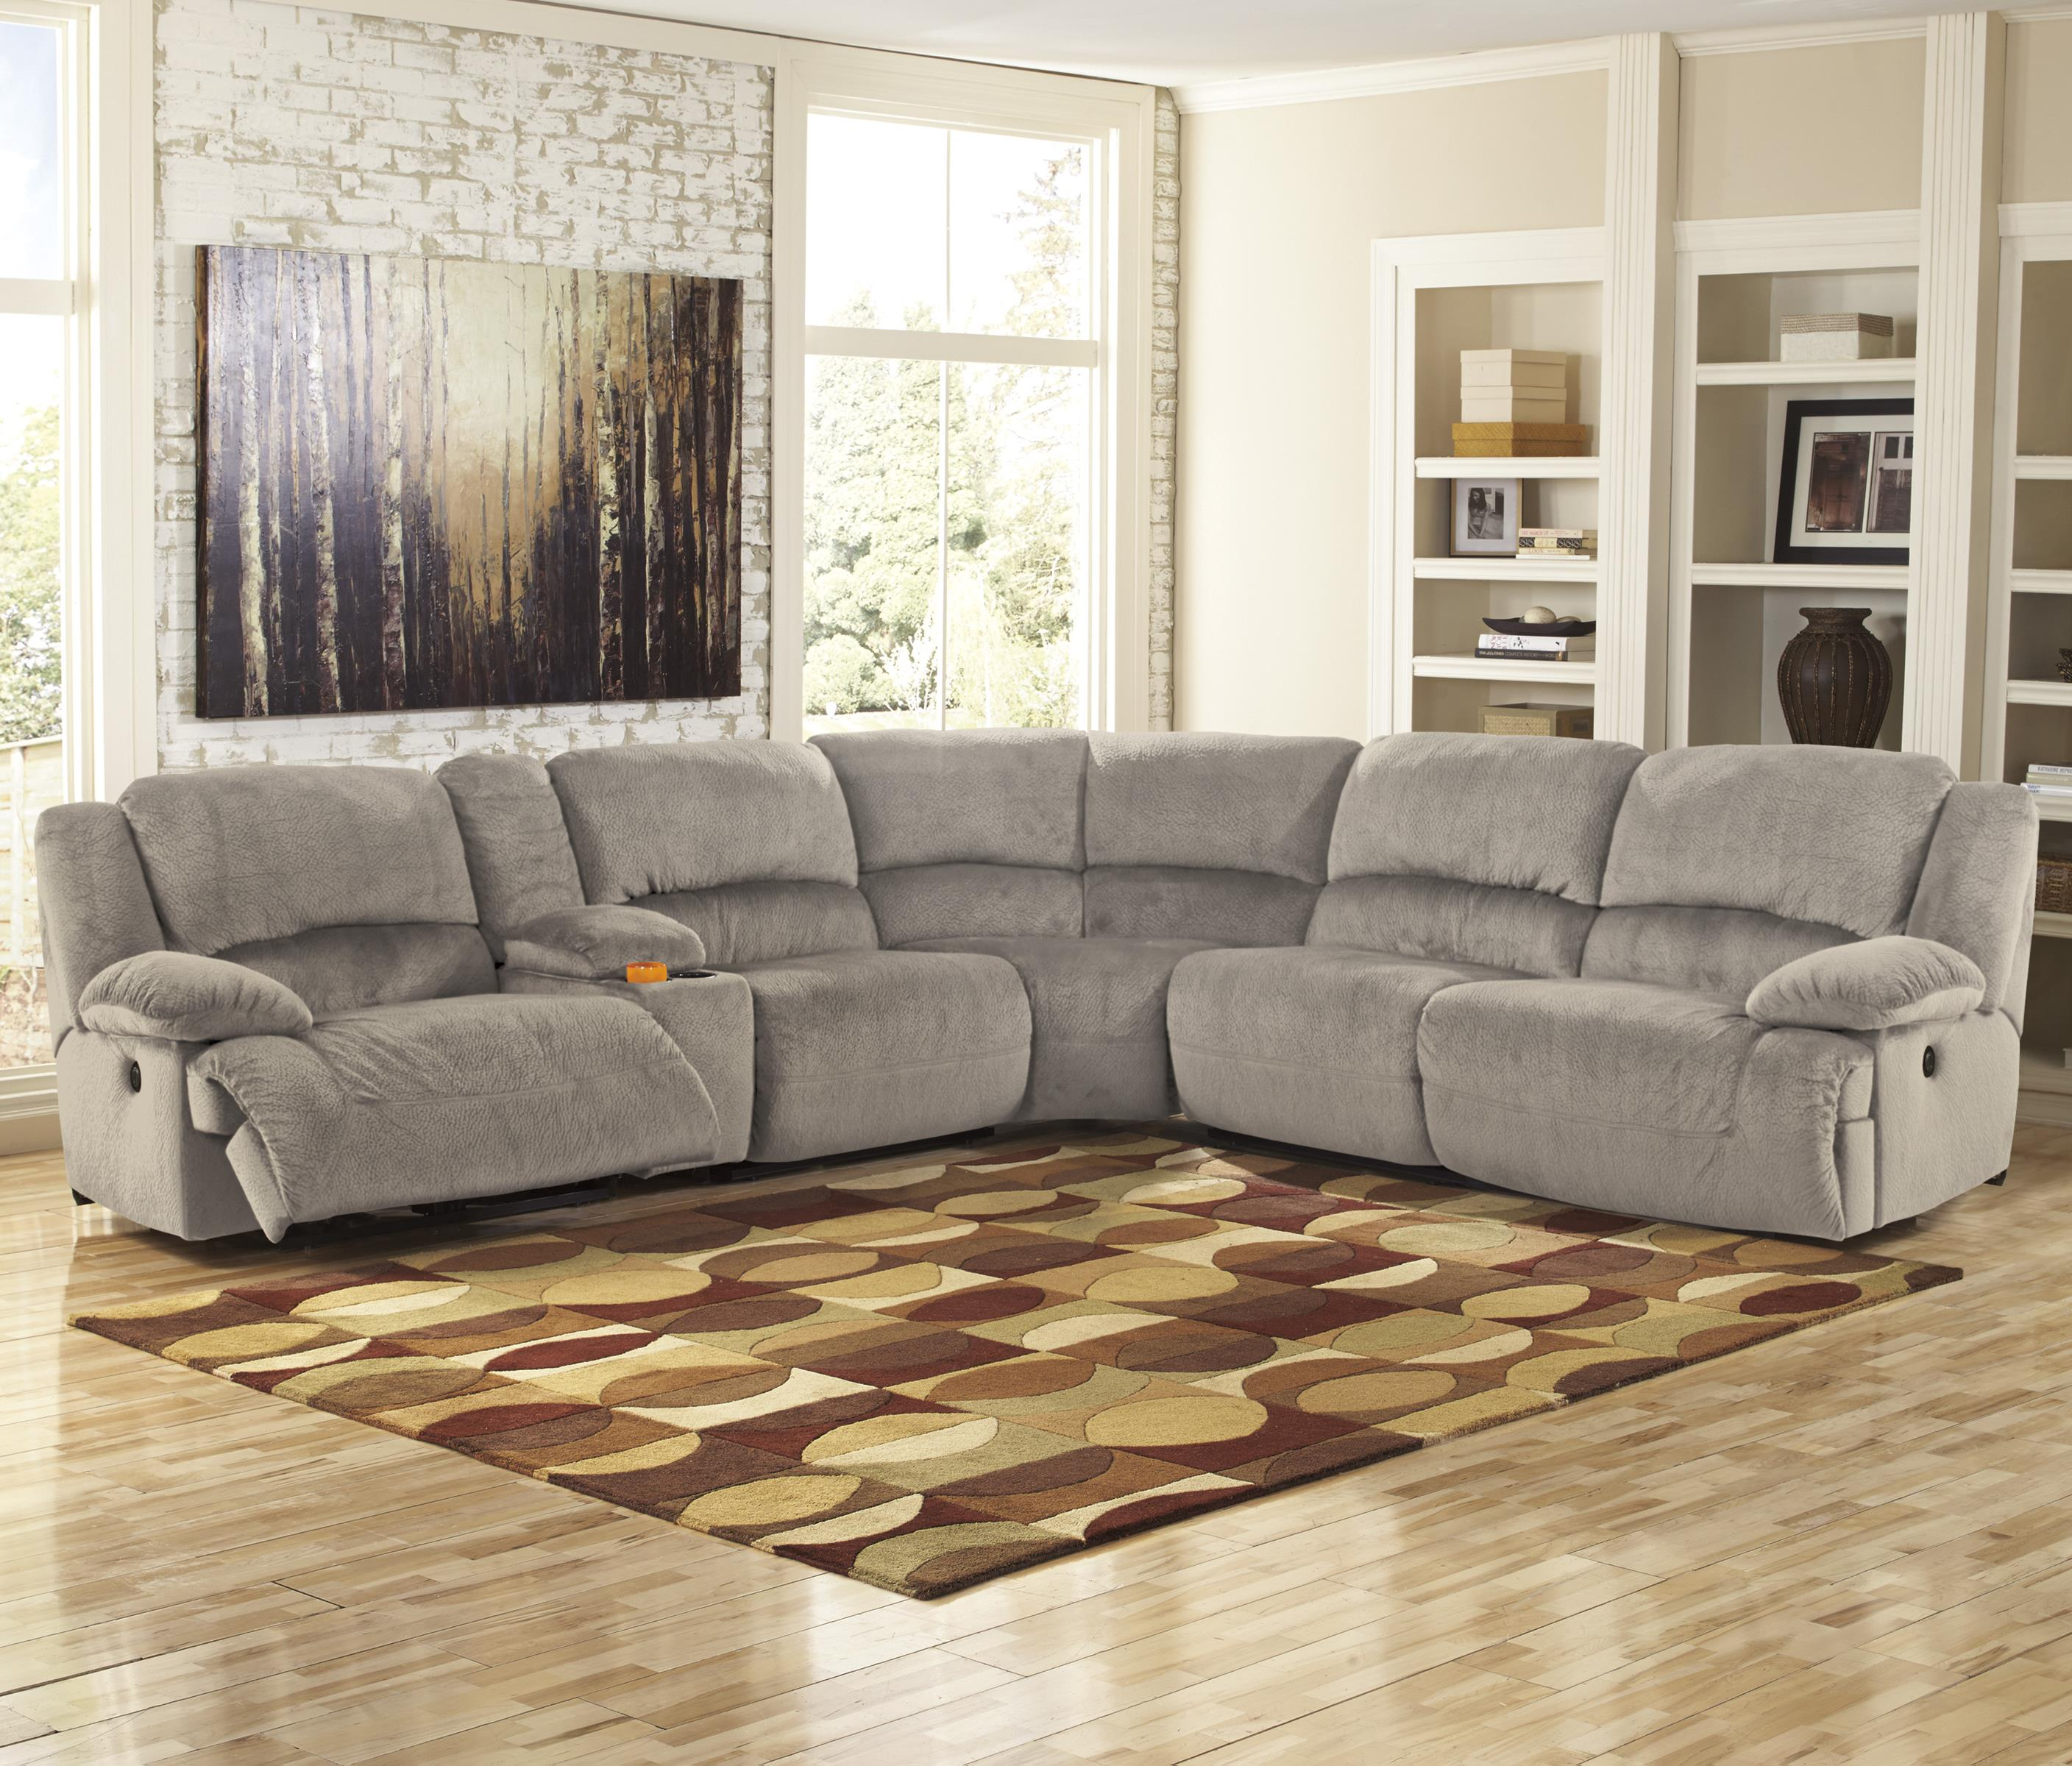 Ashley Sofas Prices: Signature Design By Ashley Toletta